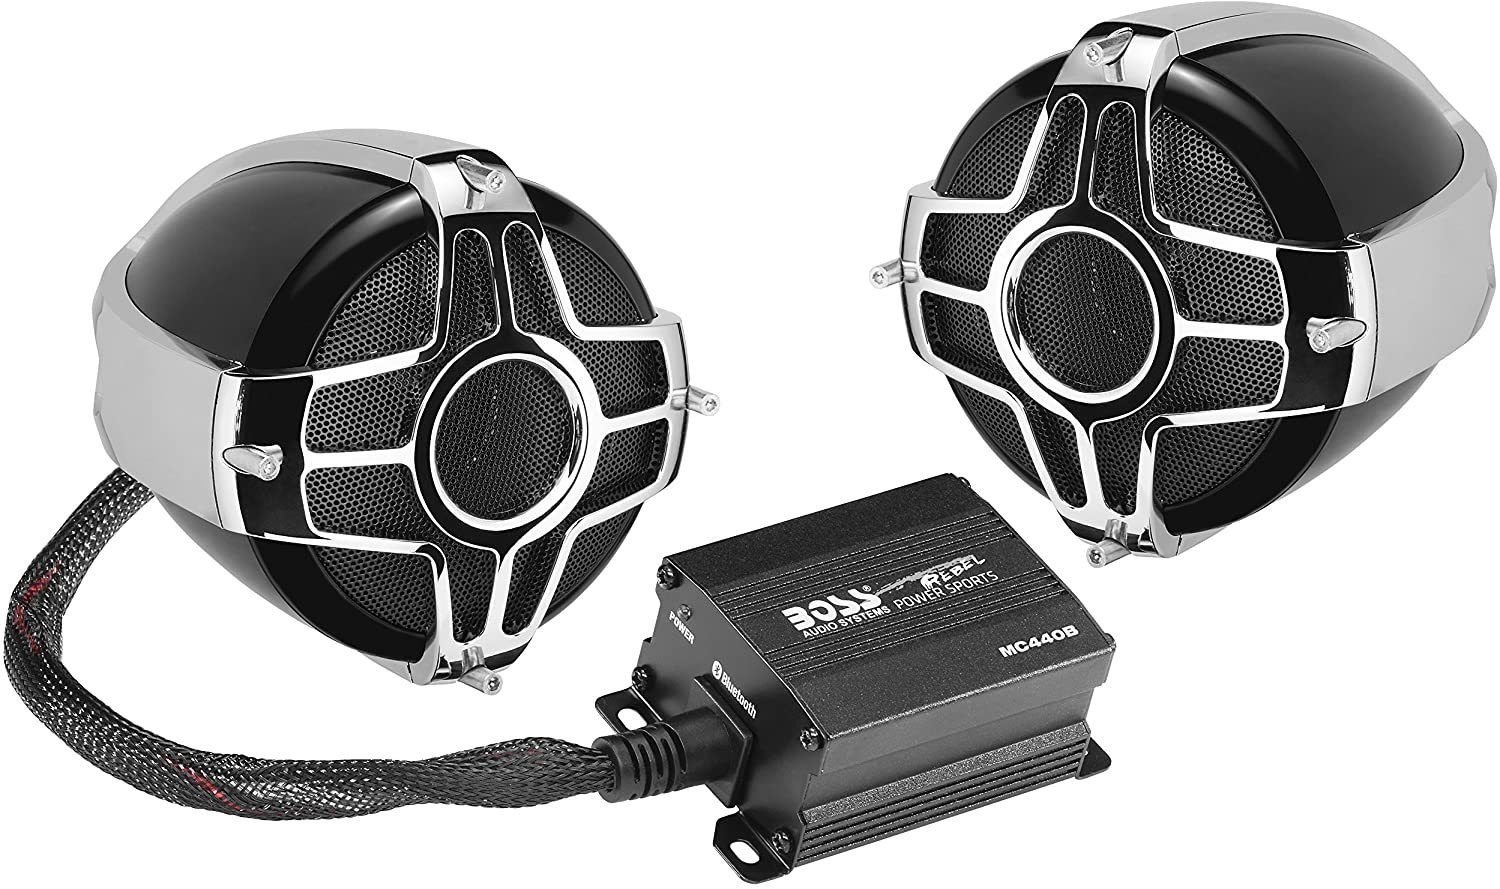 BOSS MC440B Motorcycle Weatherproof Speaker System